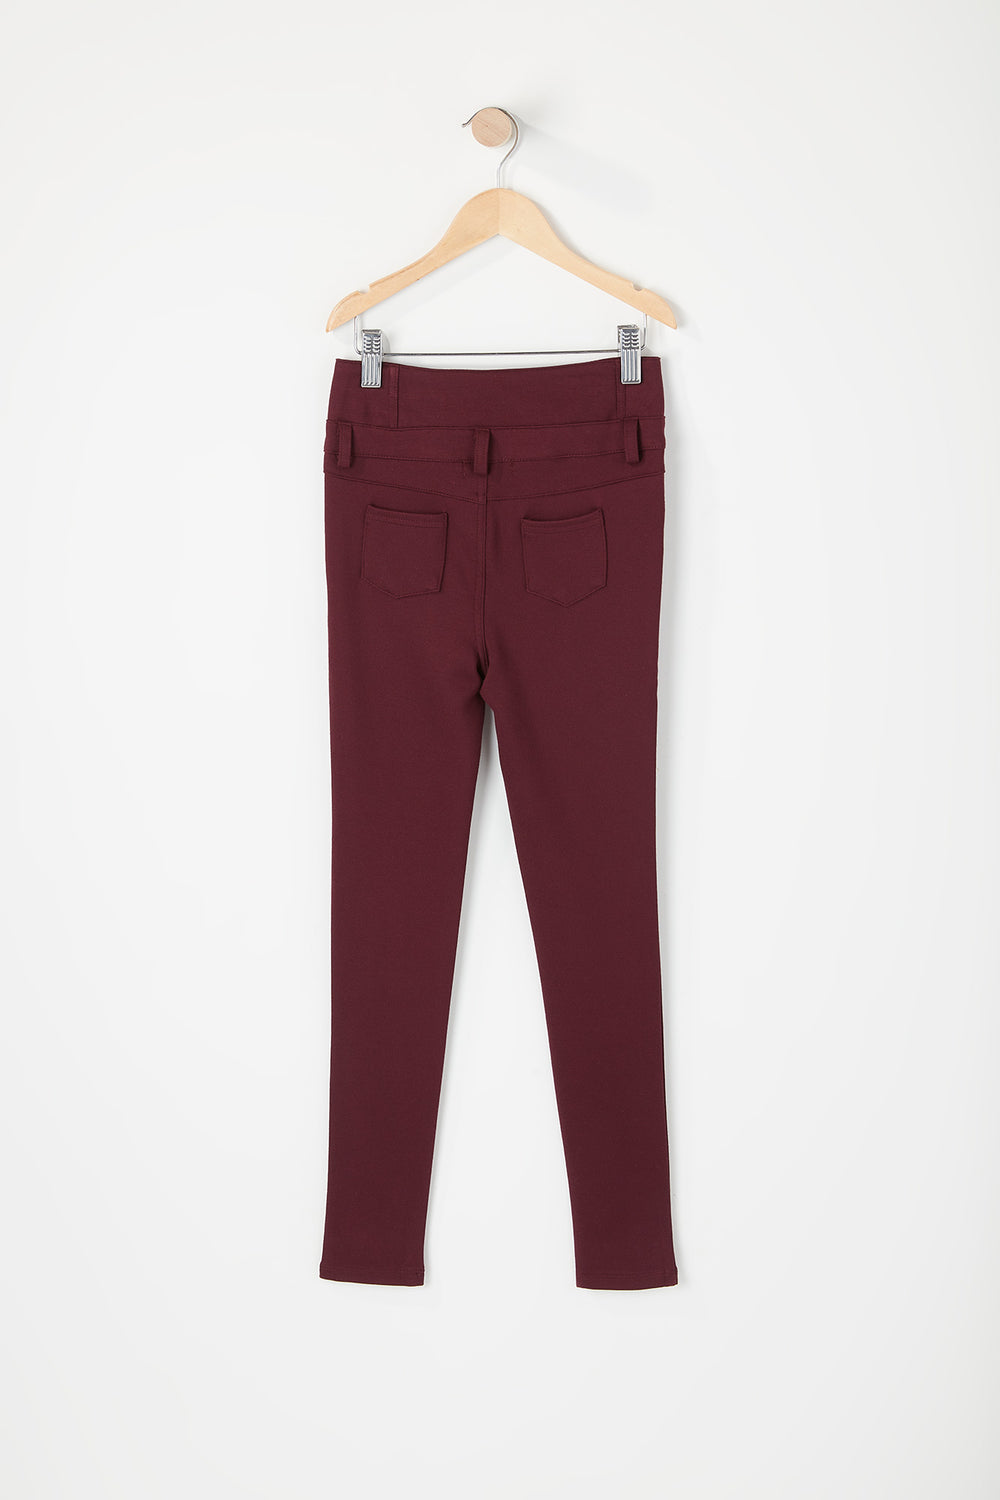 Girls 3-Tier High-Rise Jegging Wine